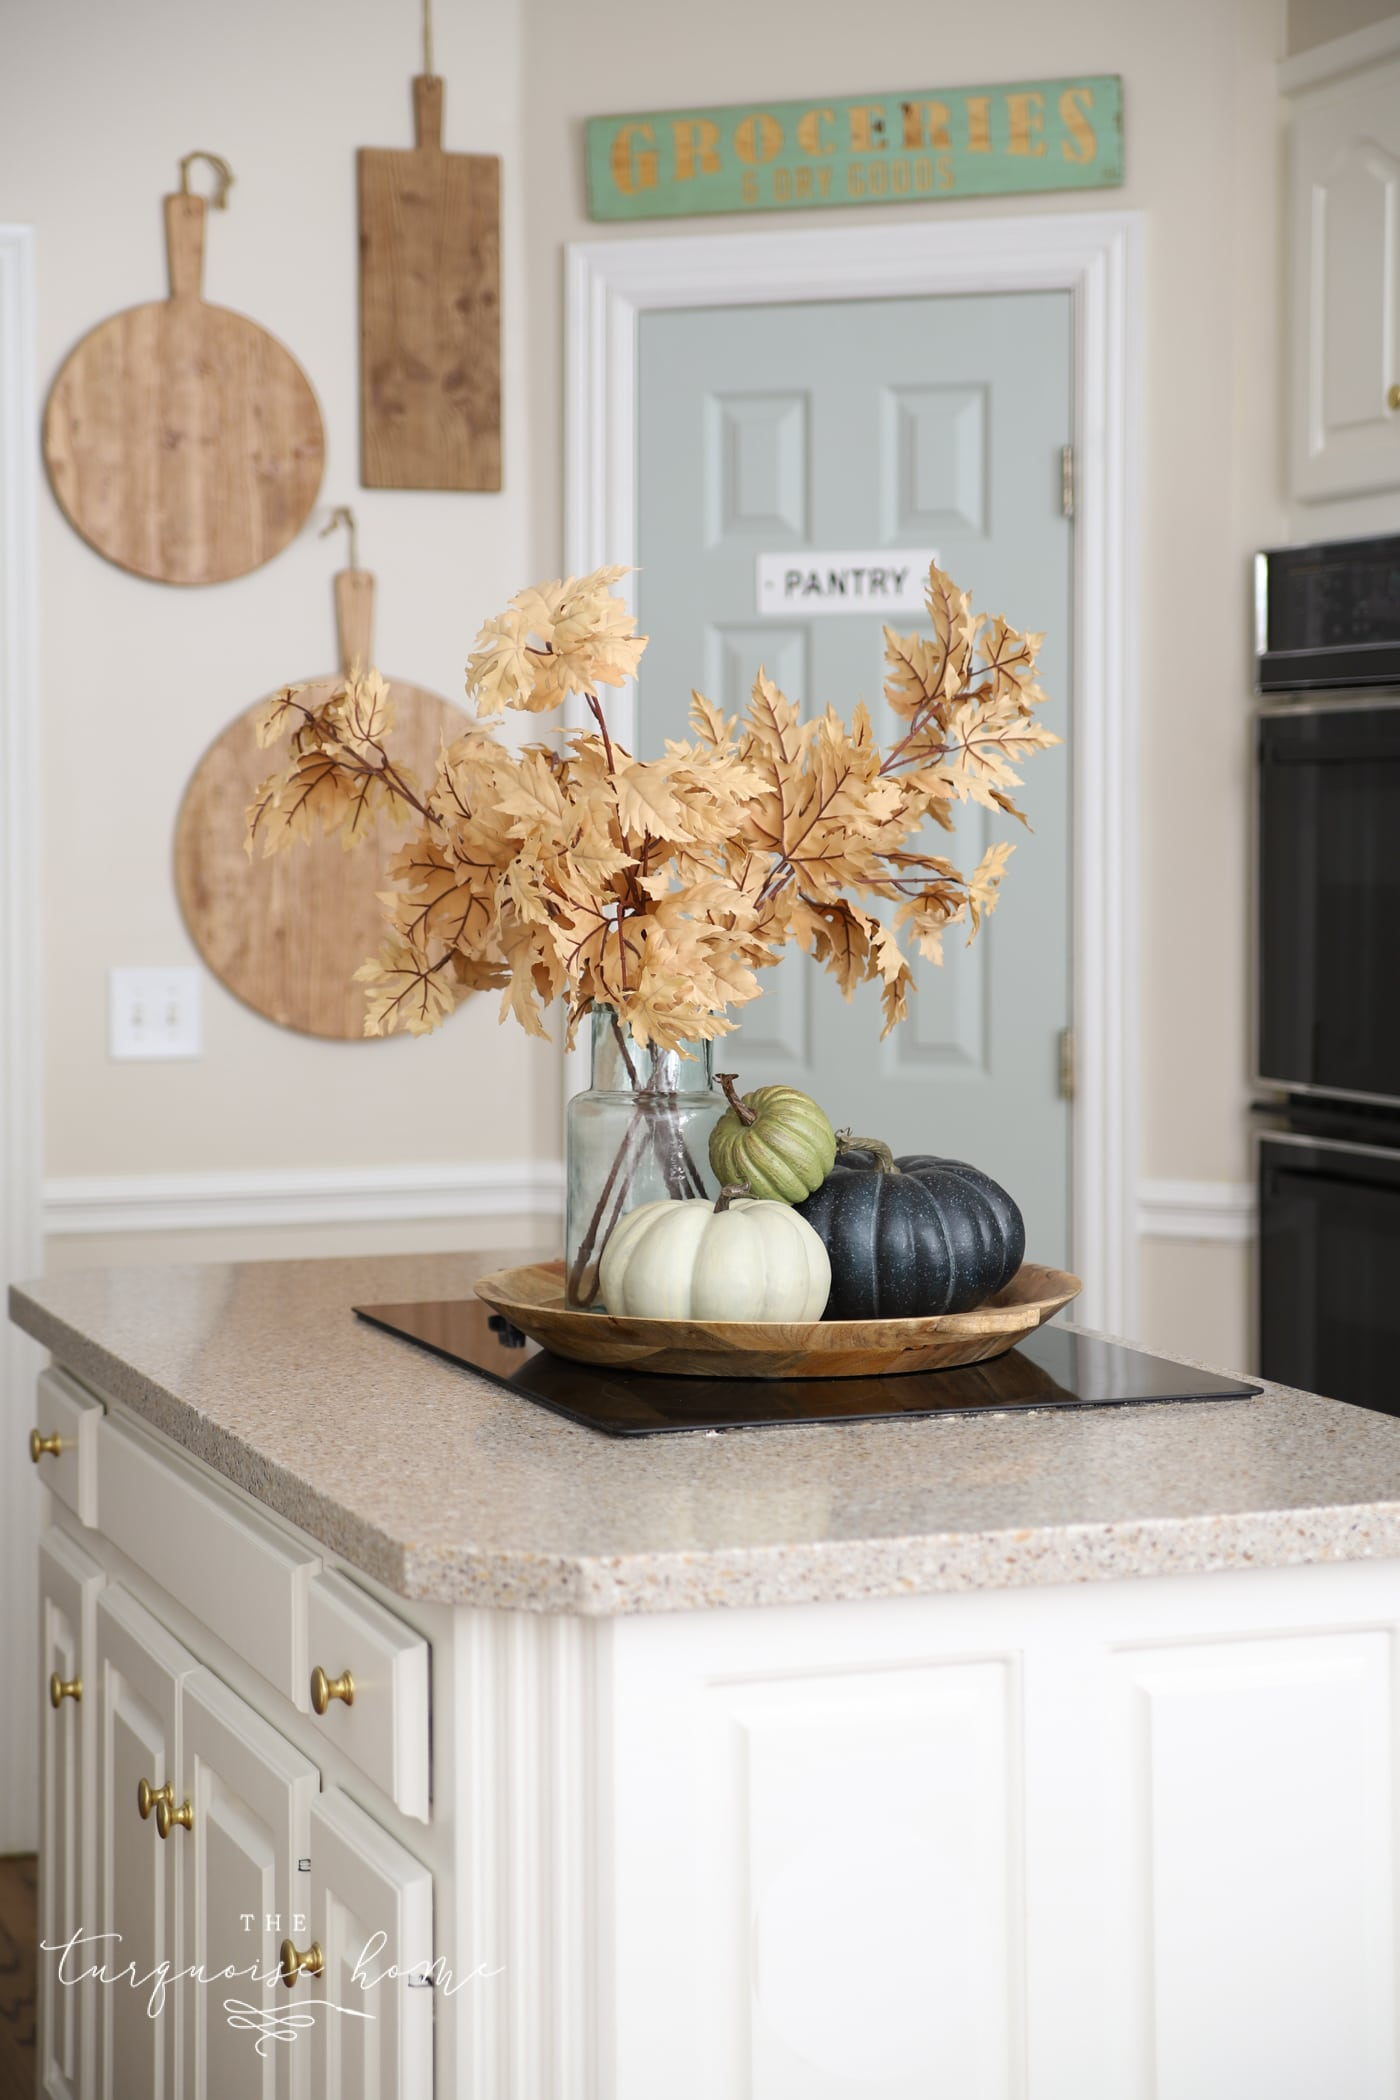 Simple Fall Decor in the Kitchen